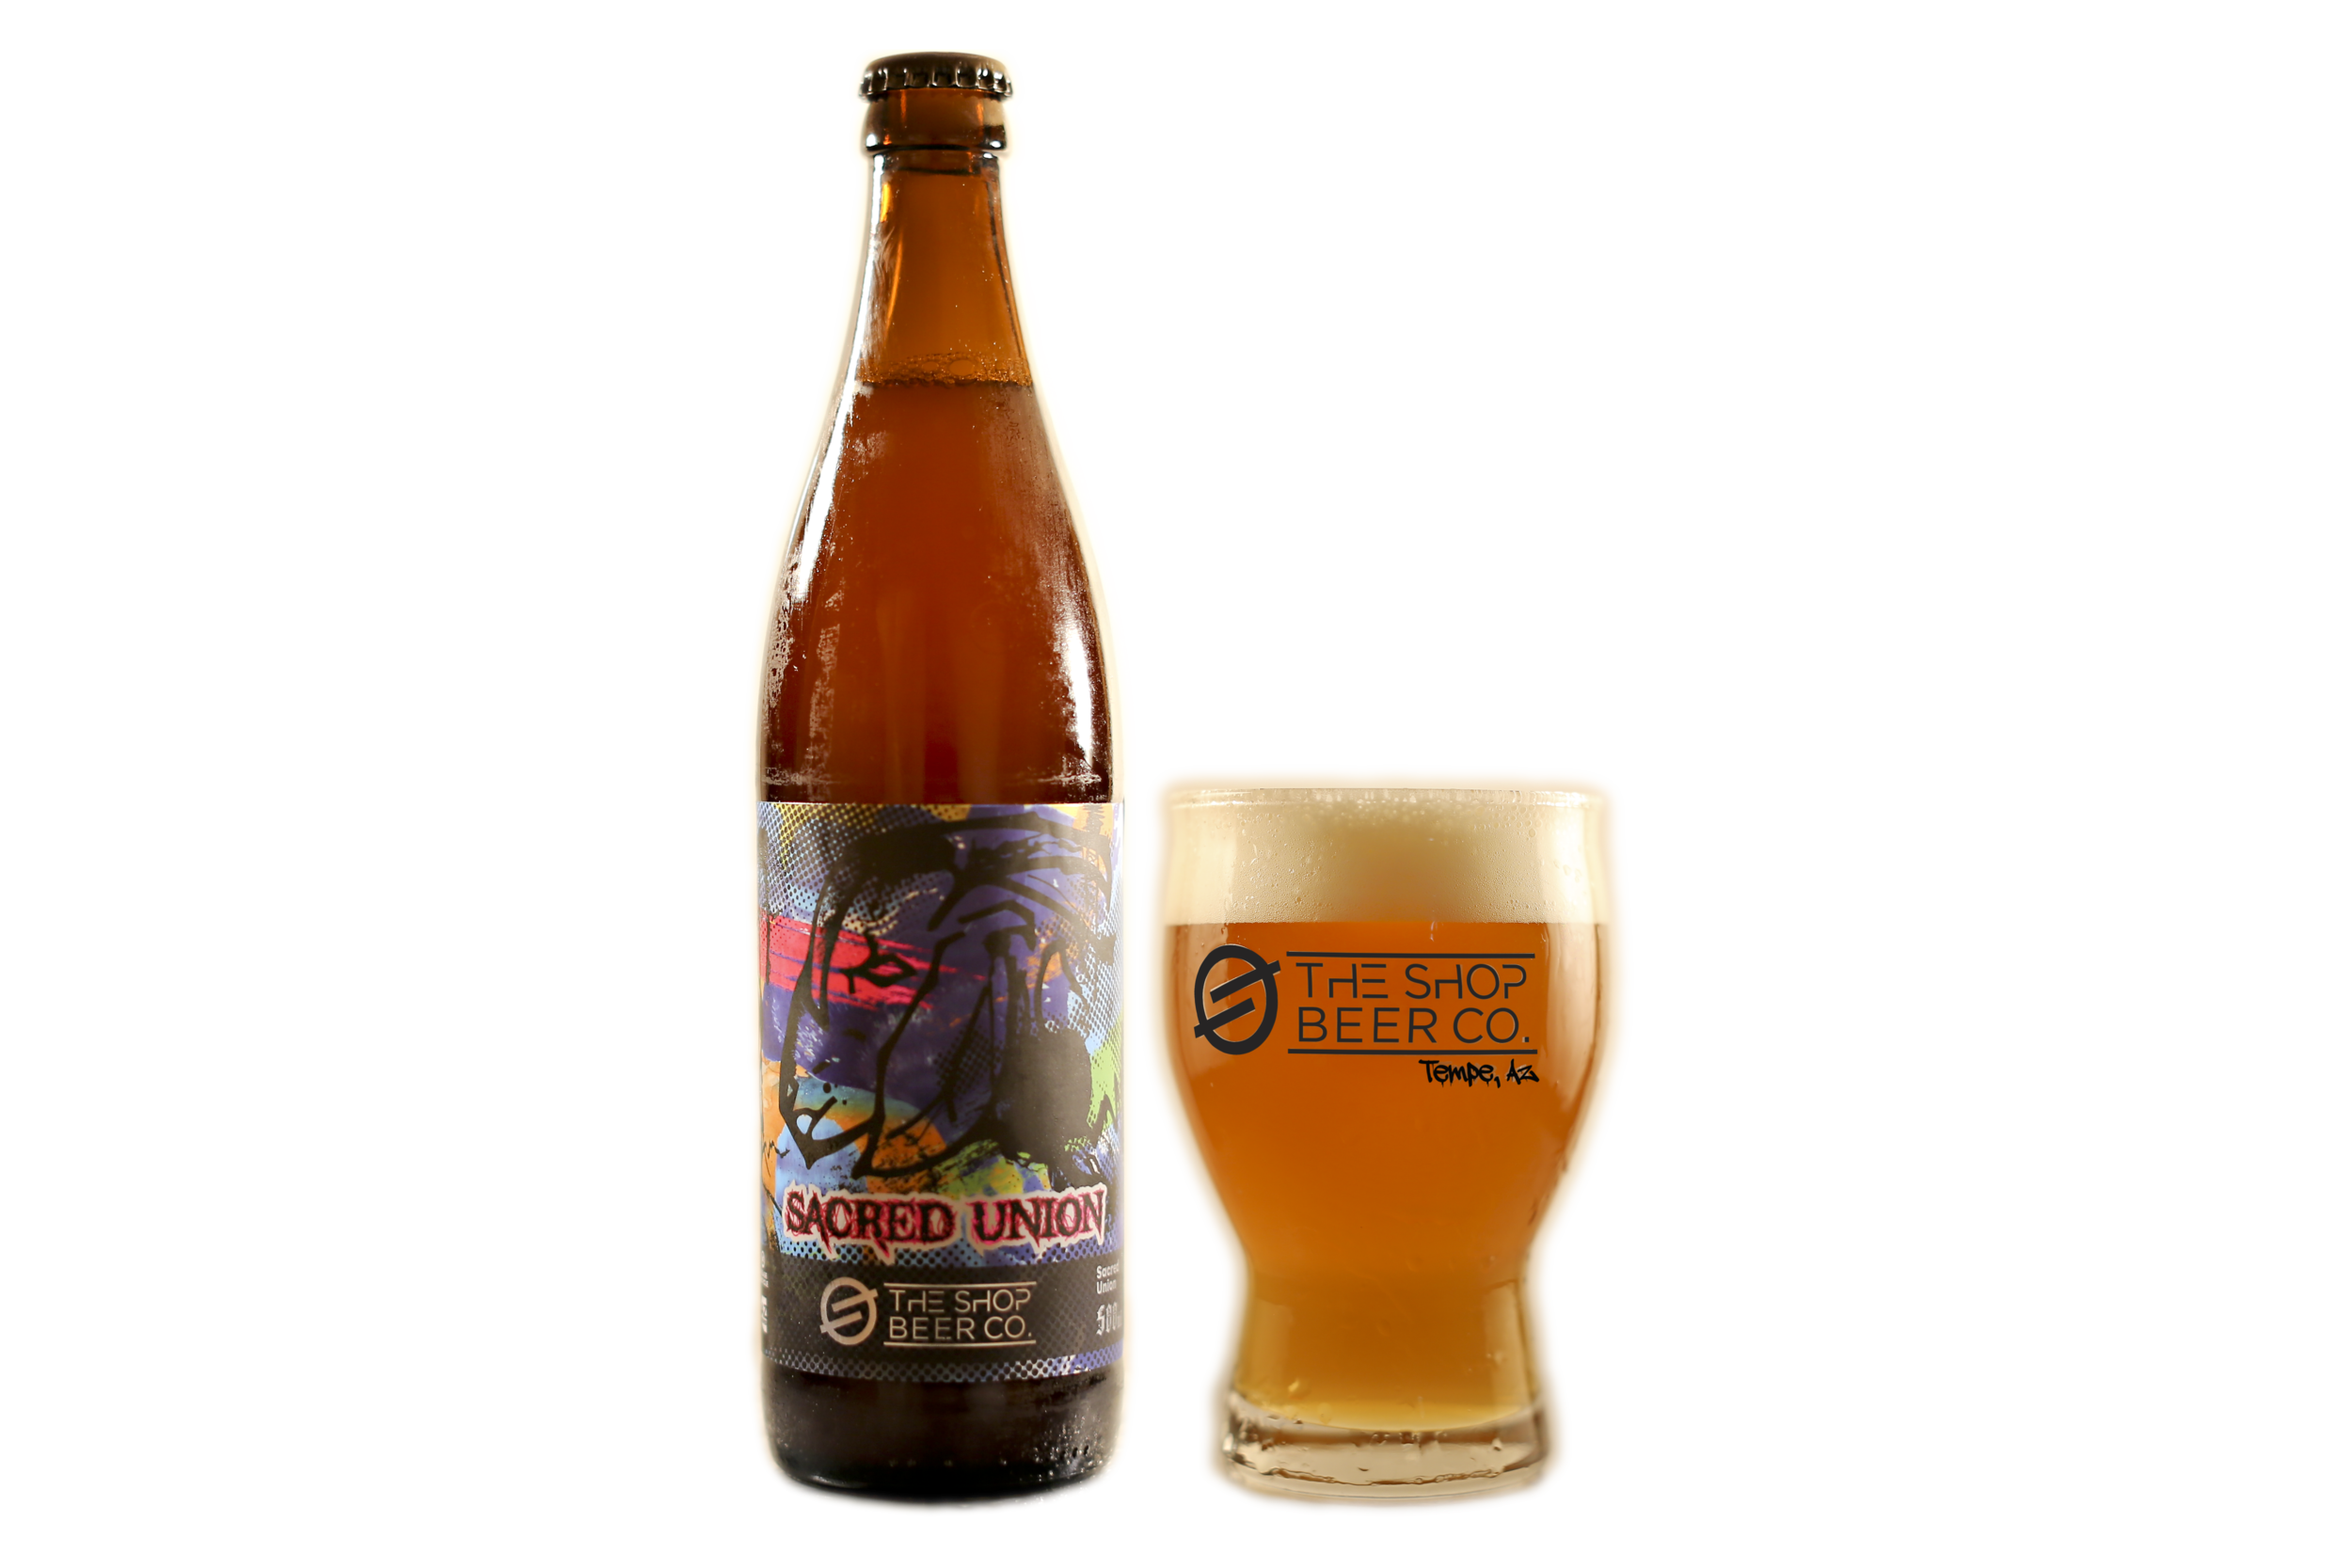 TheShopBeer_Sacred Union_Bottle and glass.png